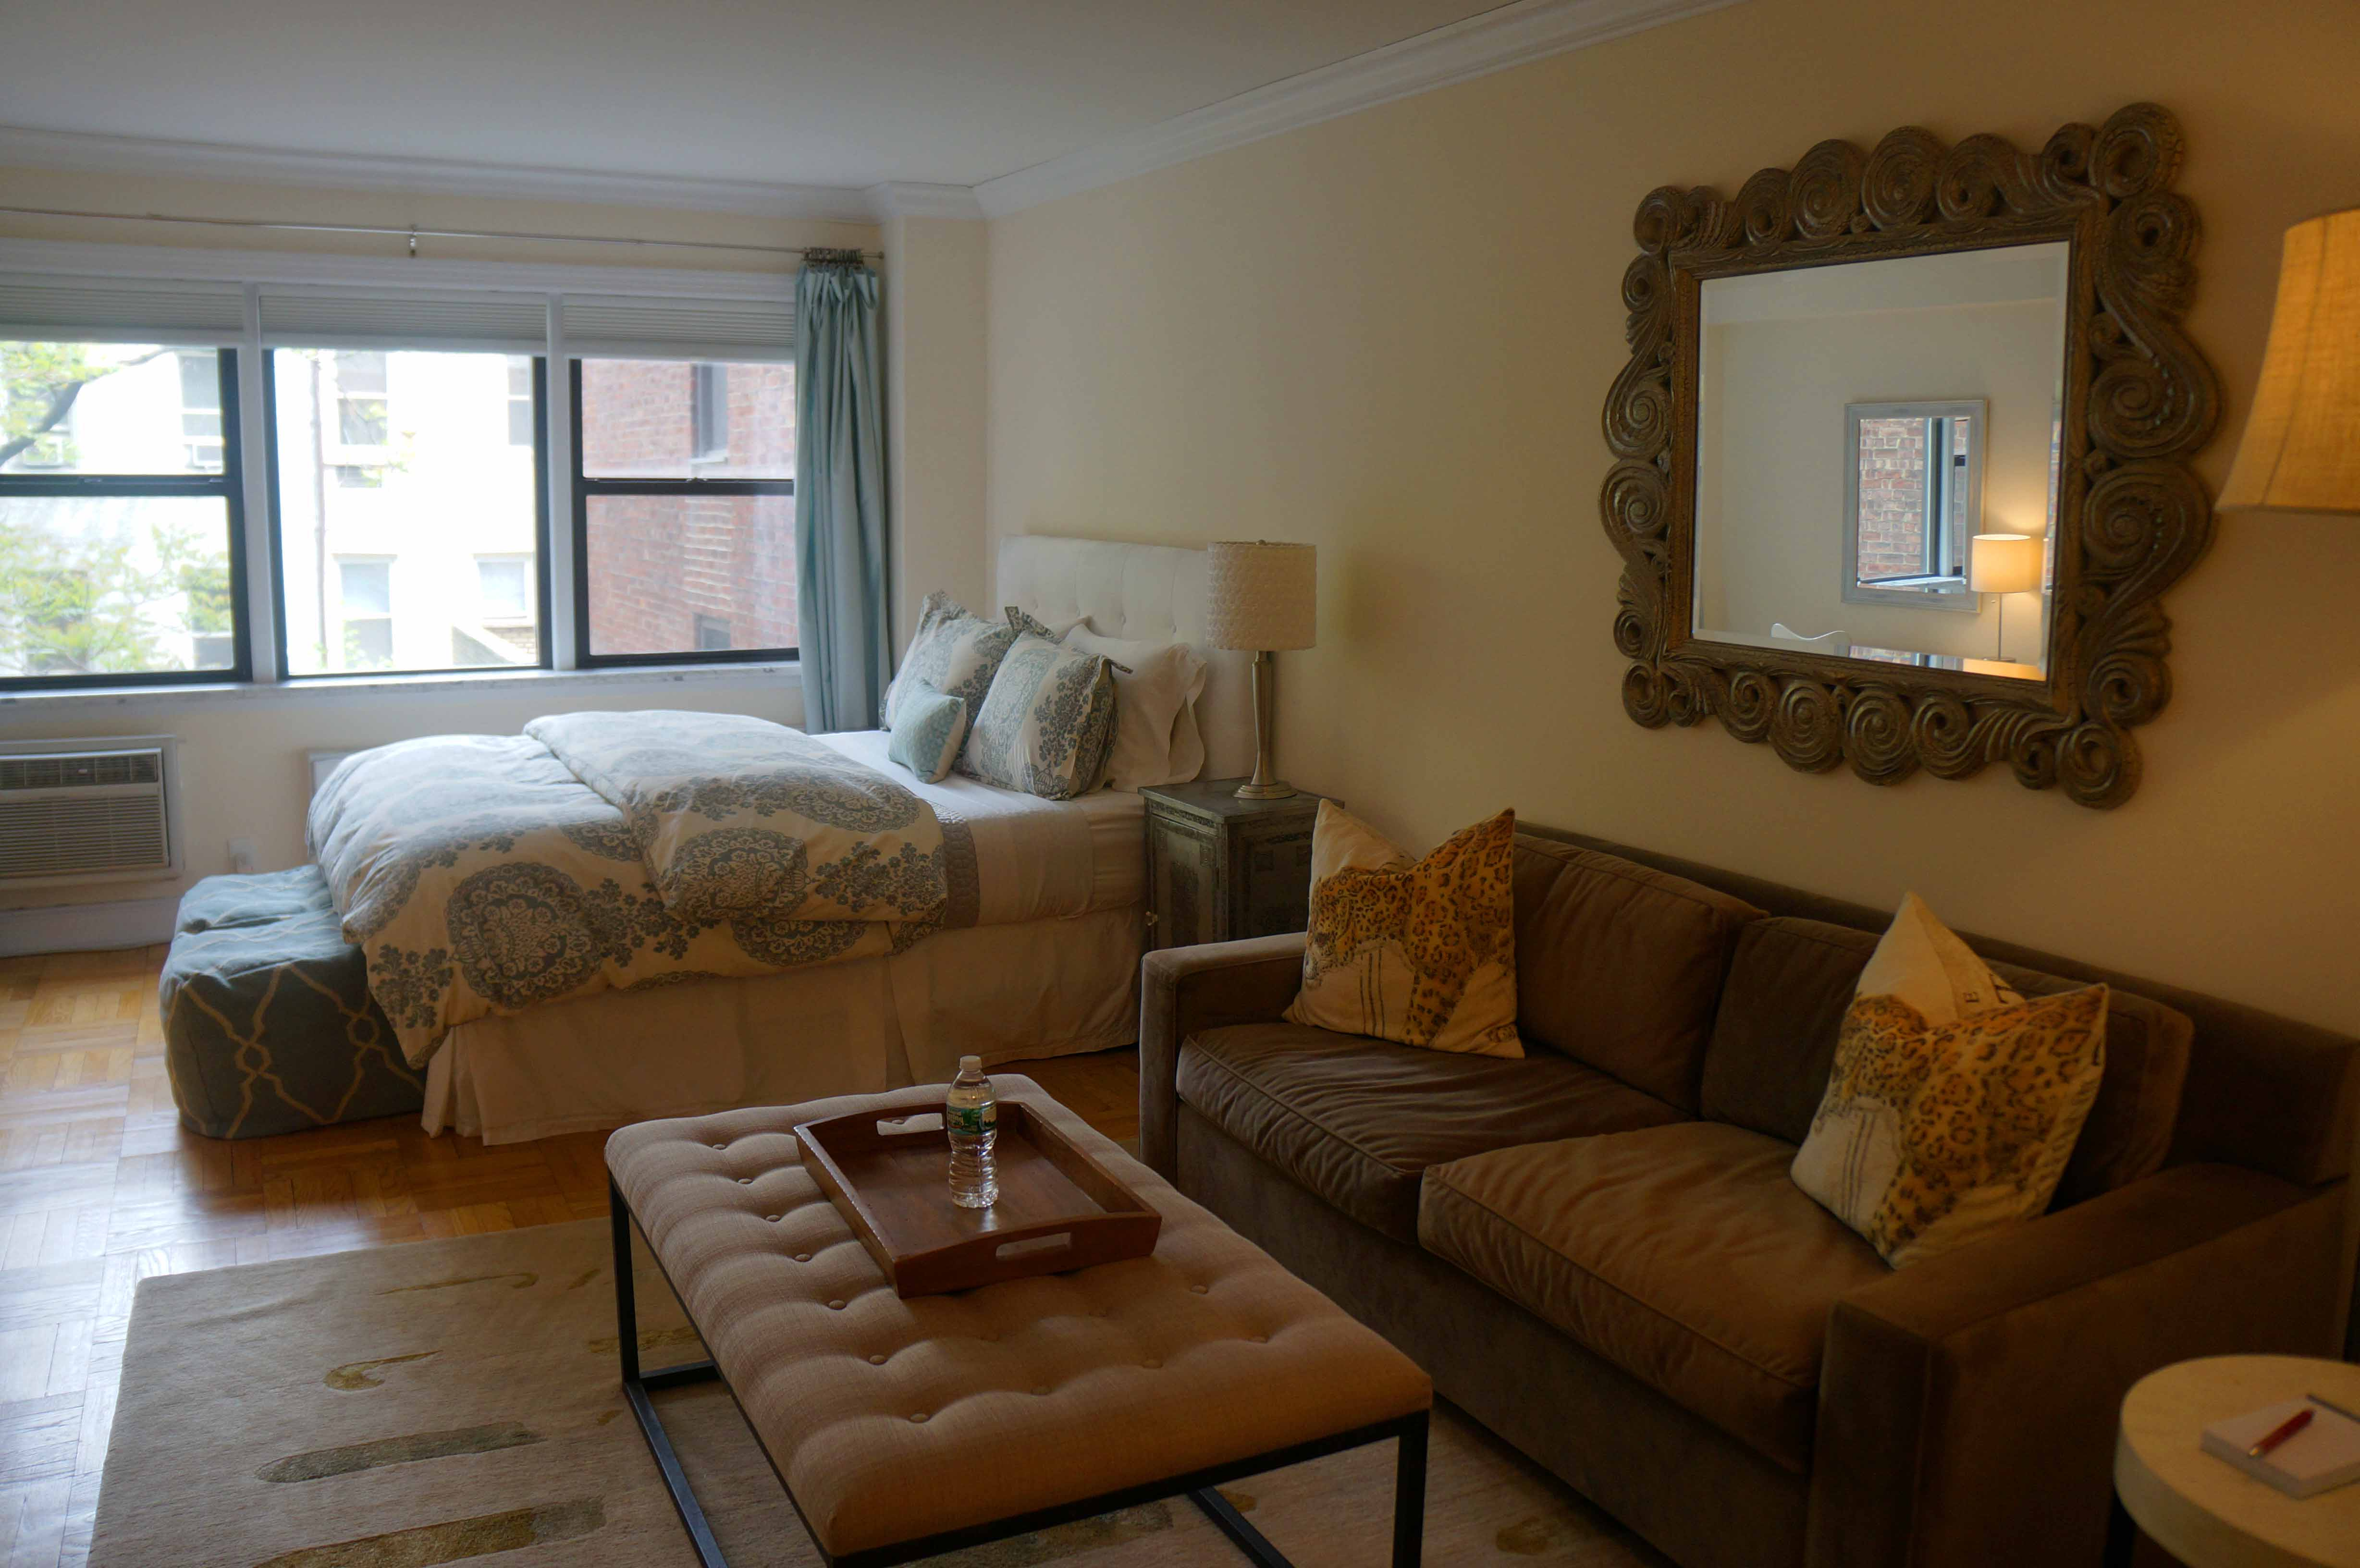 HomeAway Apartment Rental in New York: Or, The Art of Feeling Like a Writer in NYC